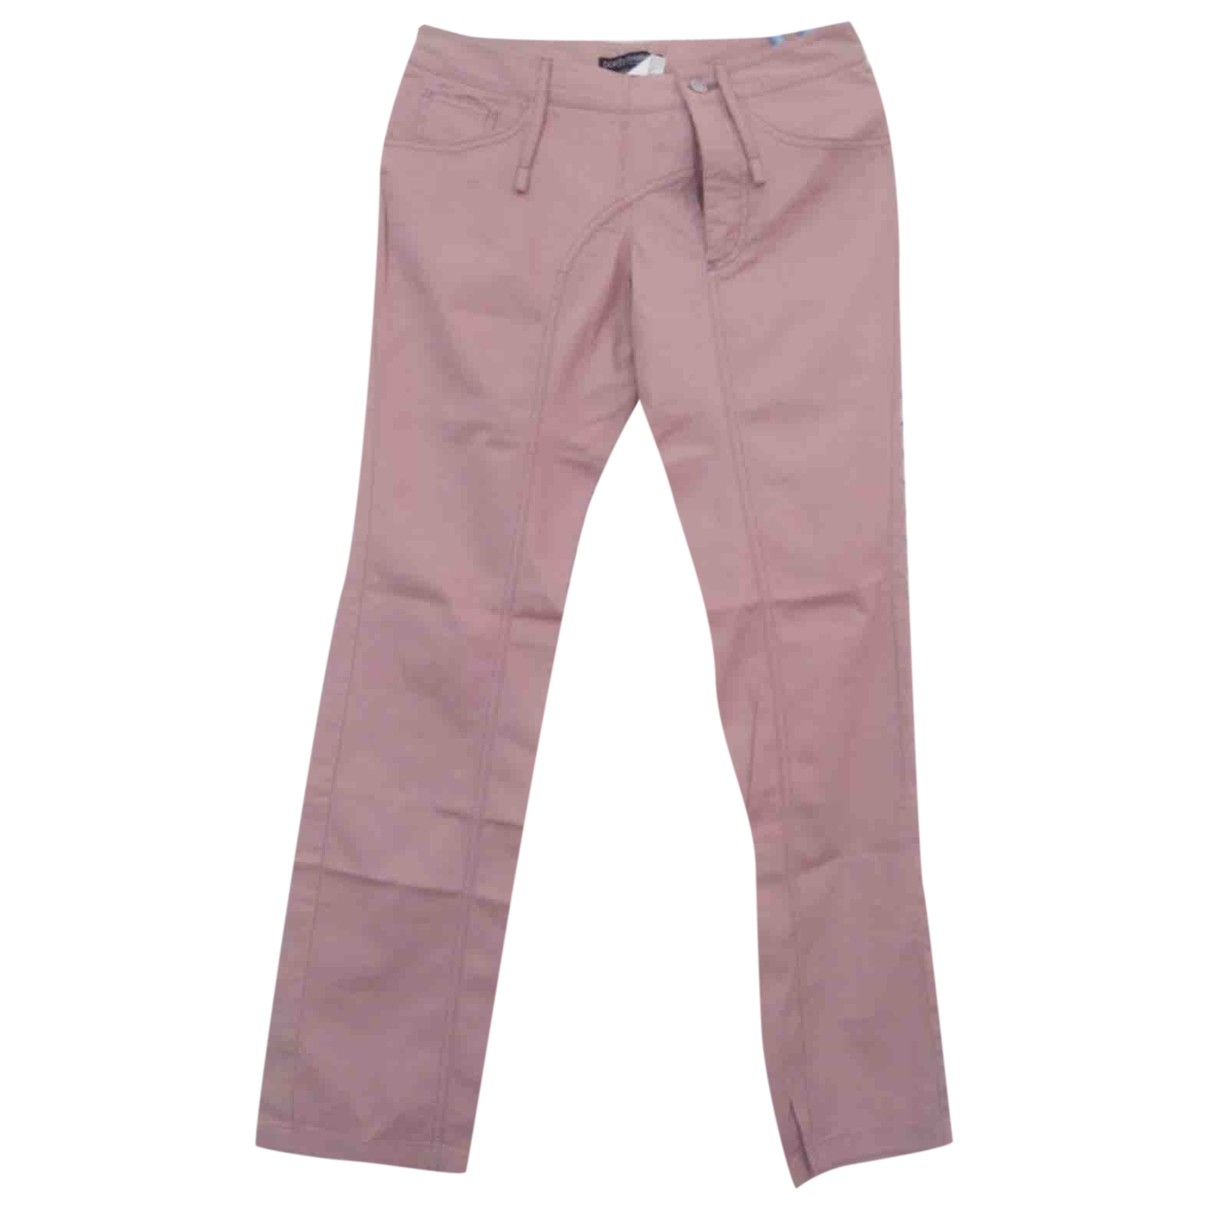 Dolce & Gabbana \N Pink Cotton Trousers for Women 40 FR